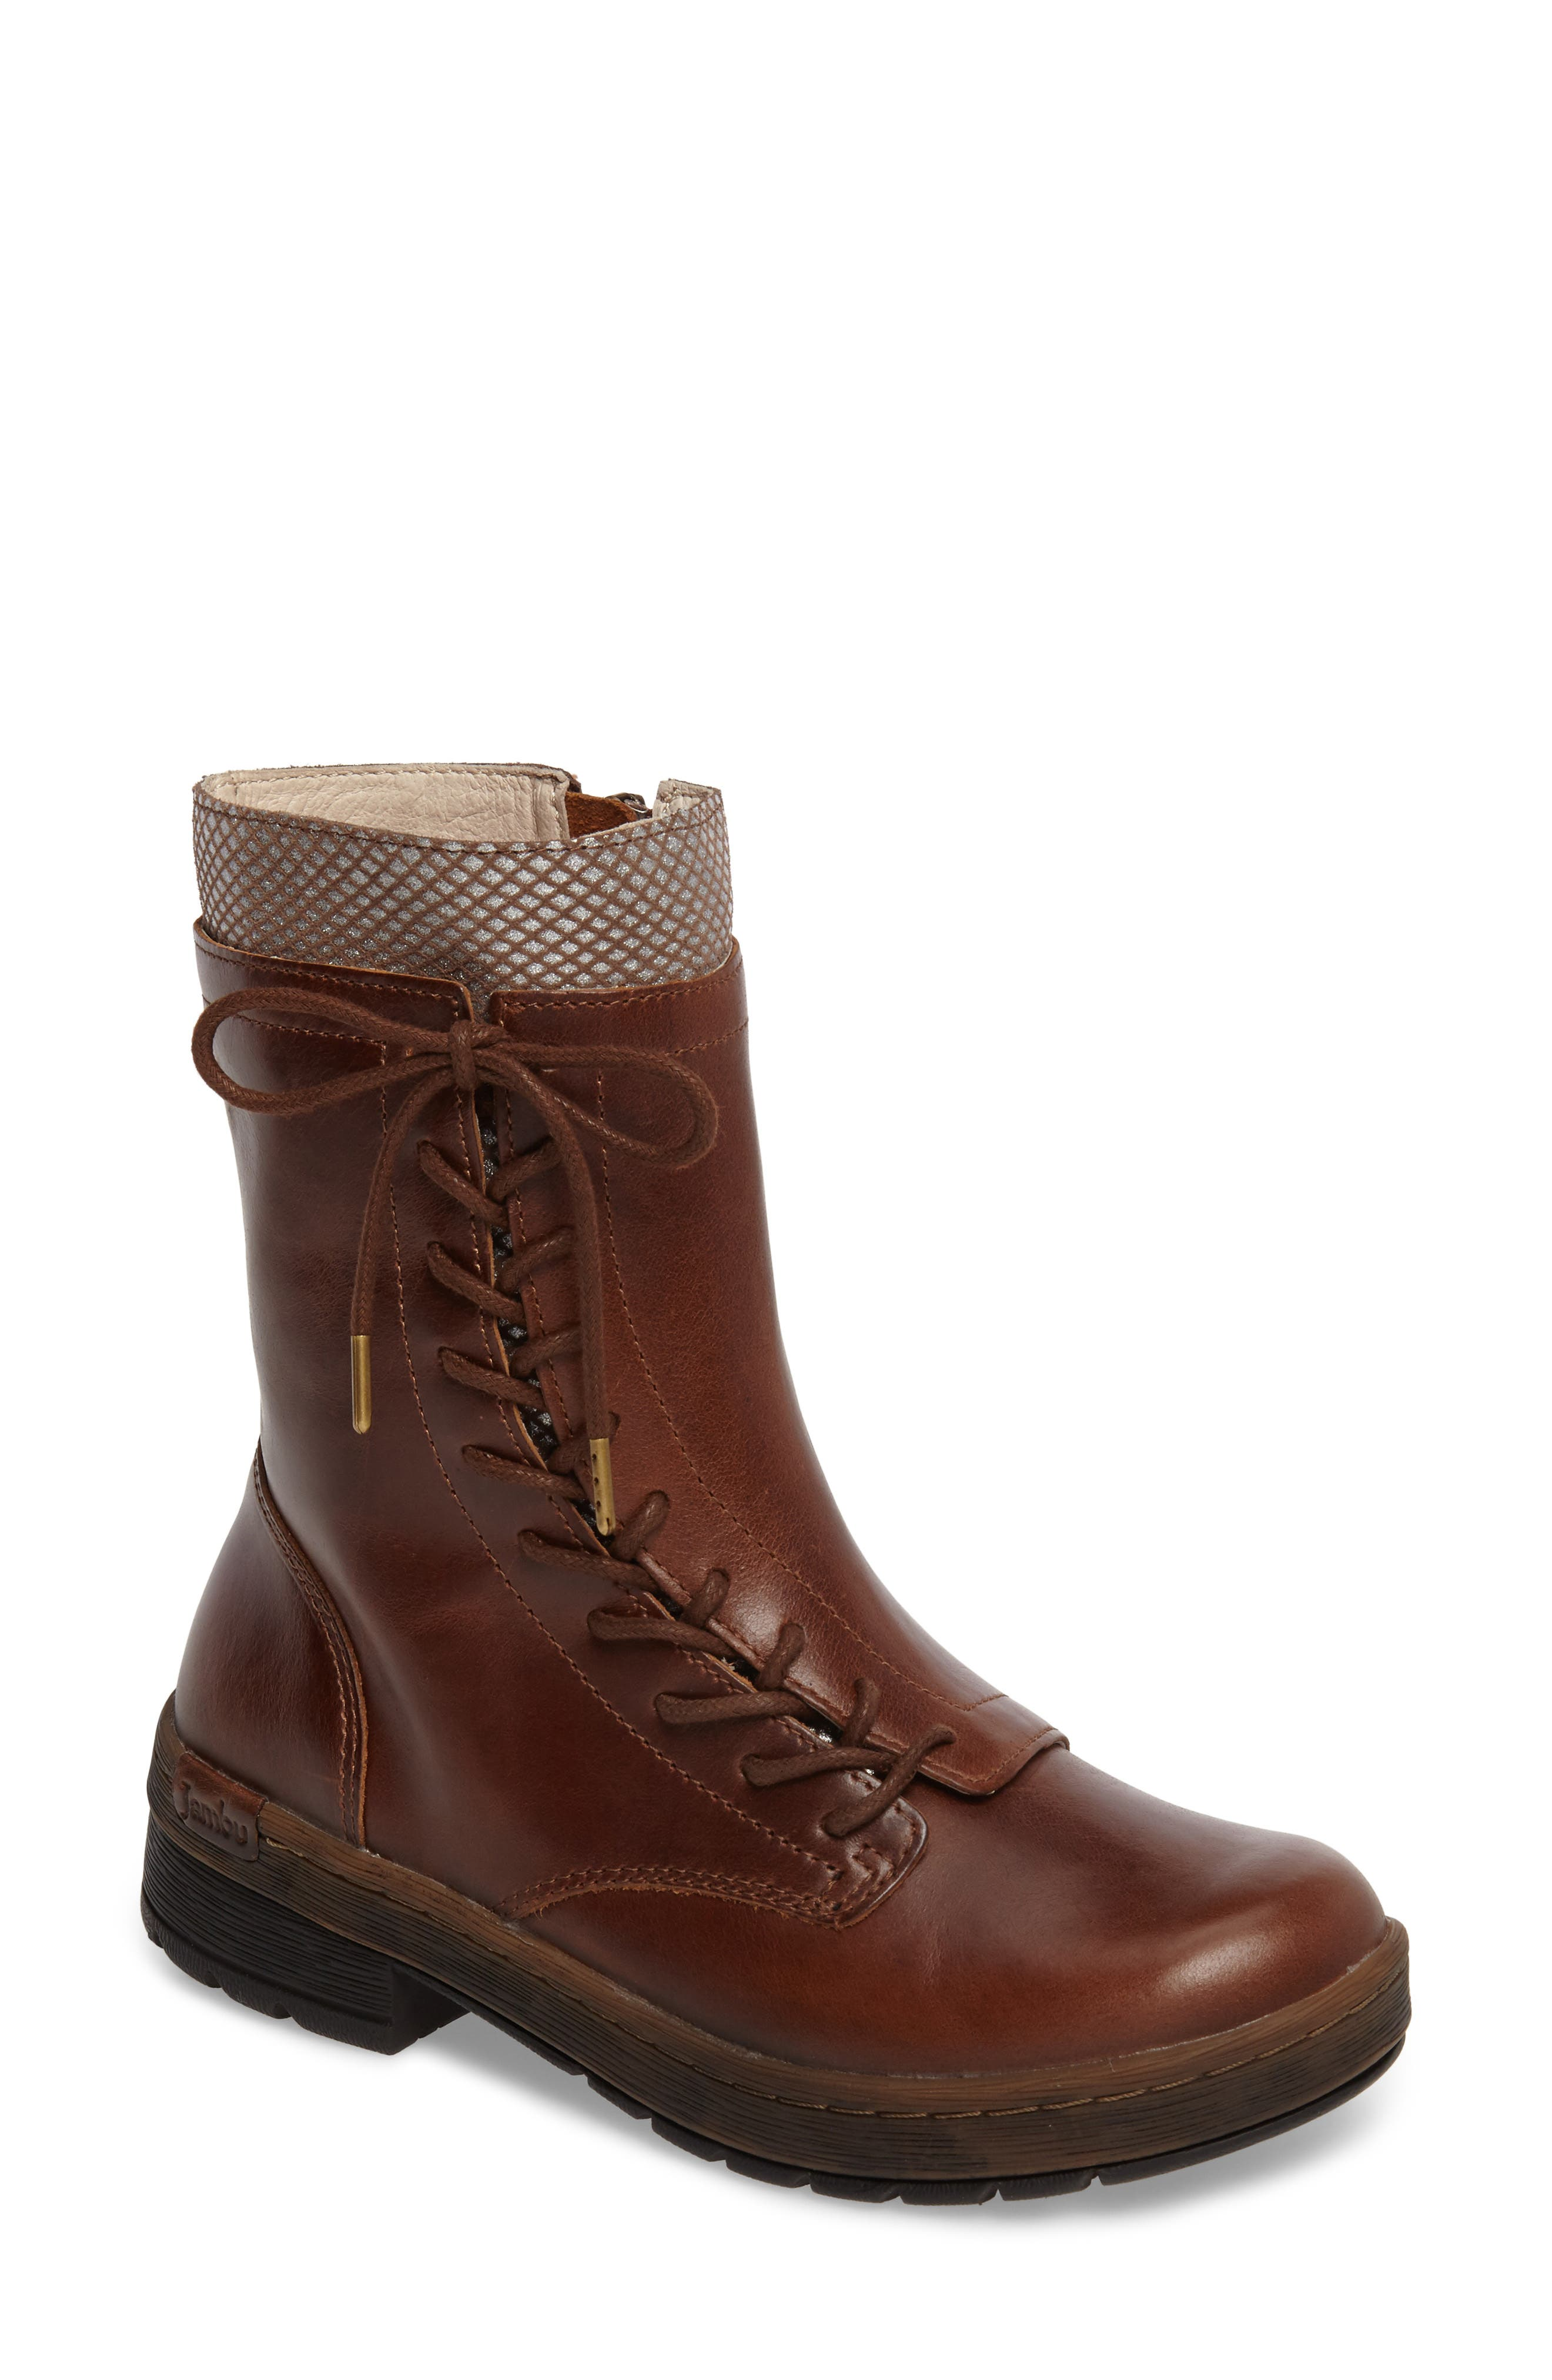 Jambu Chestnut Lace-Up Water Resistant Boot (Women)